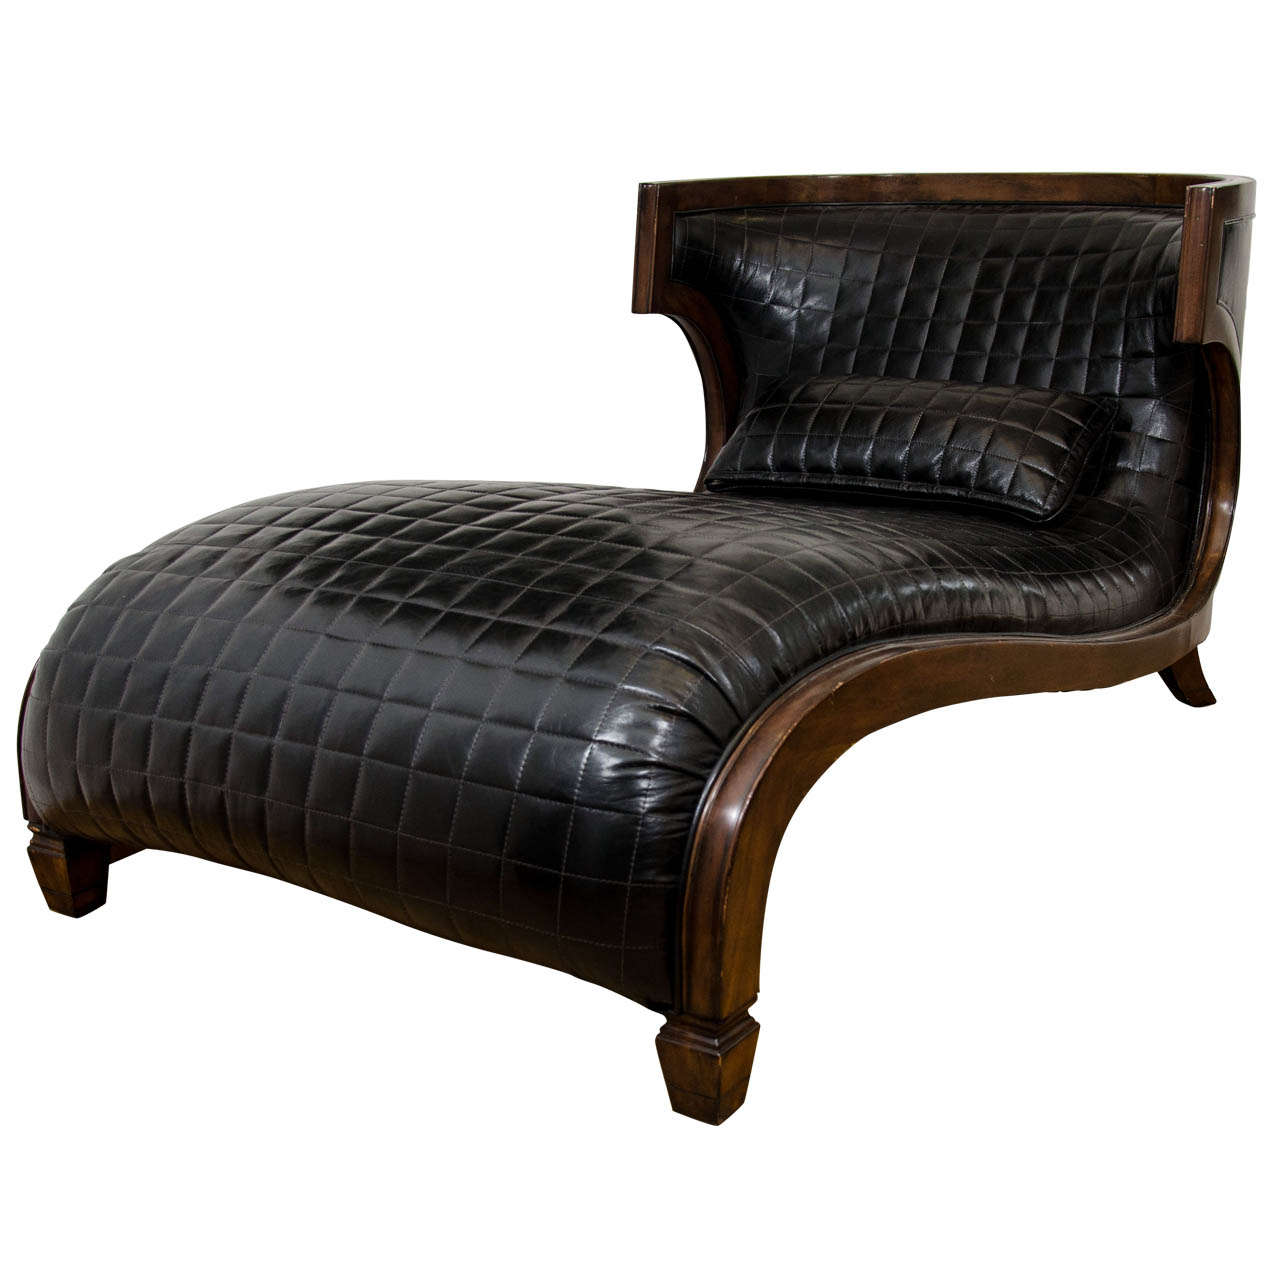 a vintage curvaceous black leather wide chaise longue at